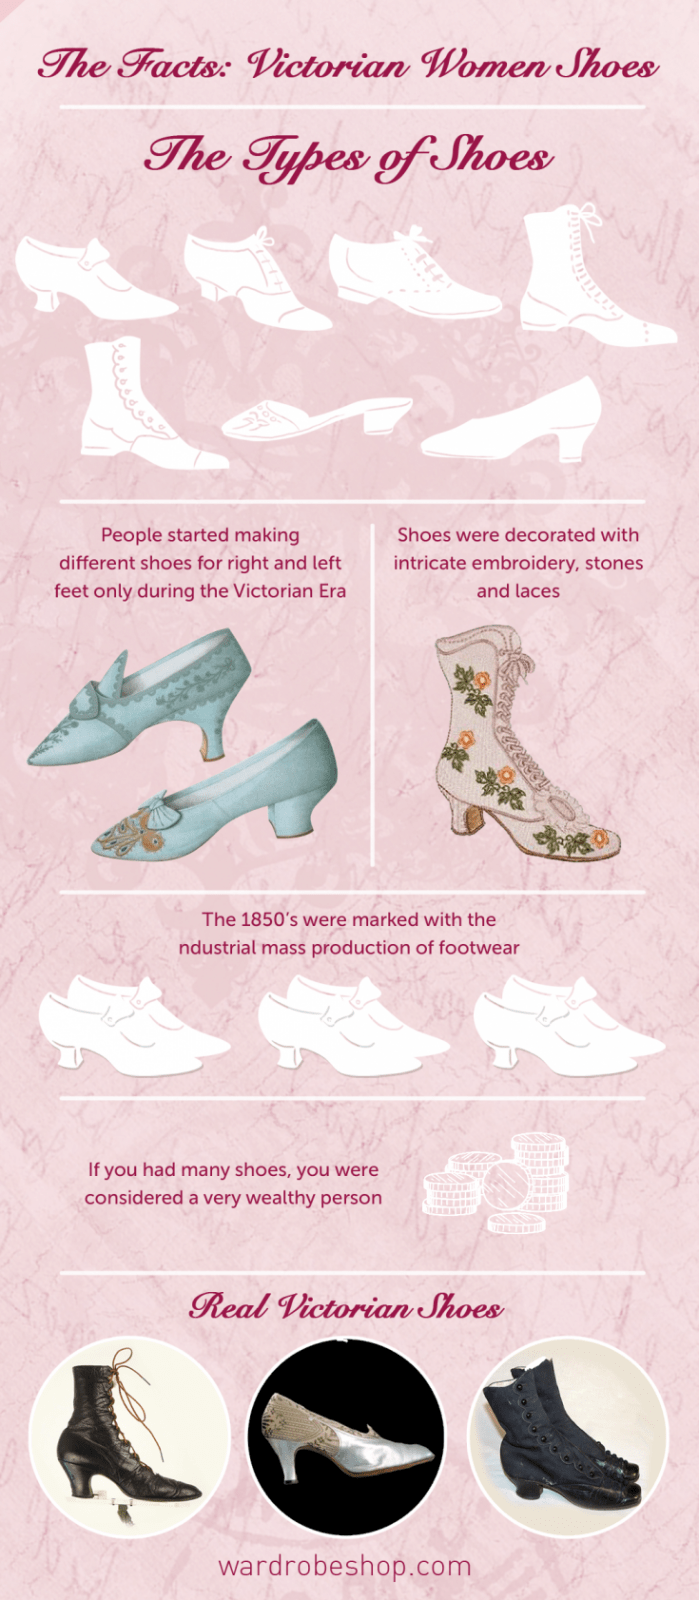 Different facts and types of Victorian shoes